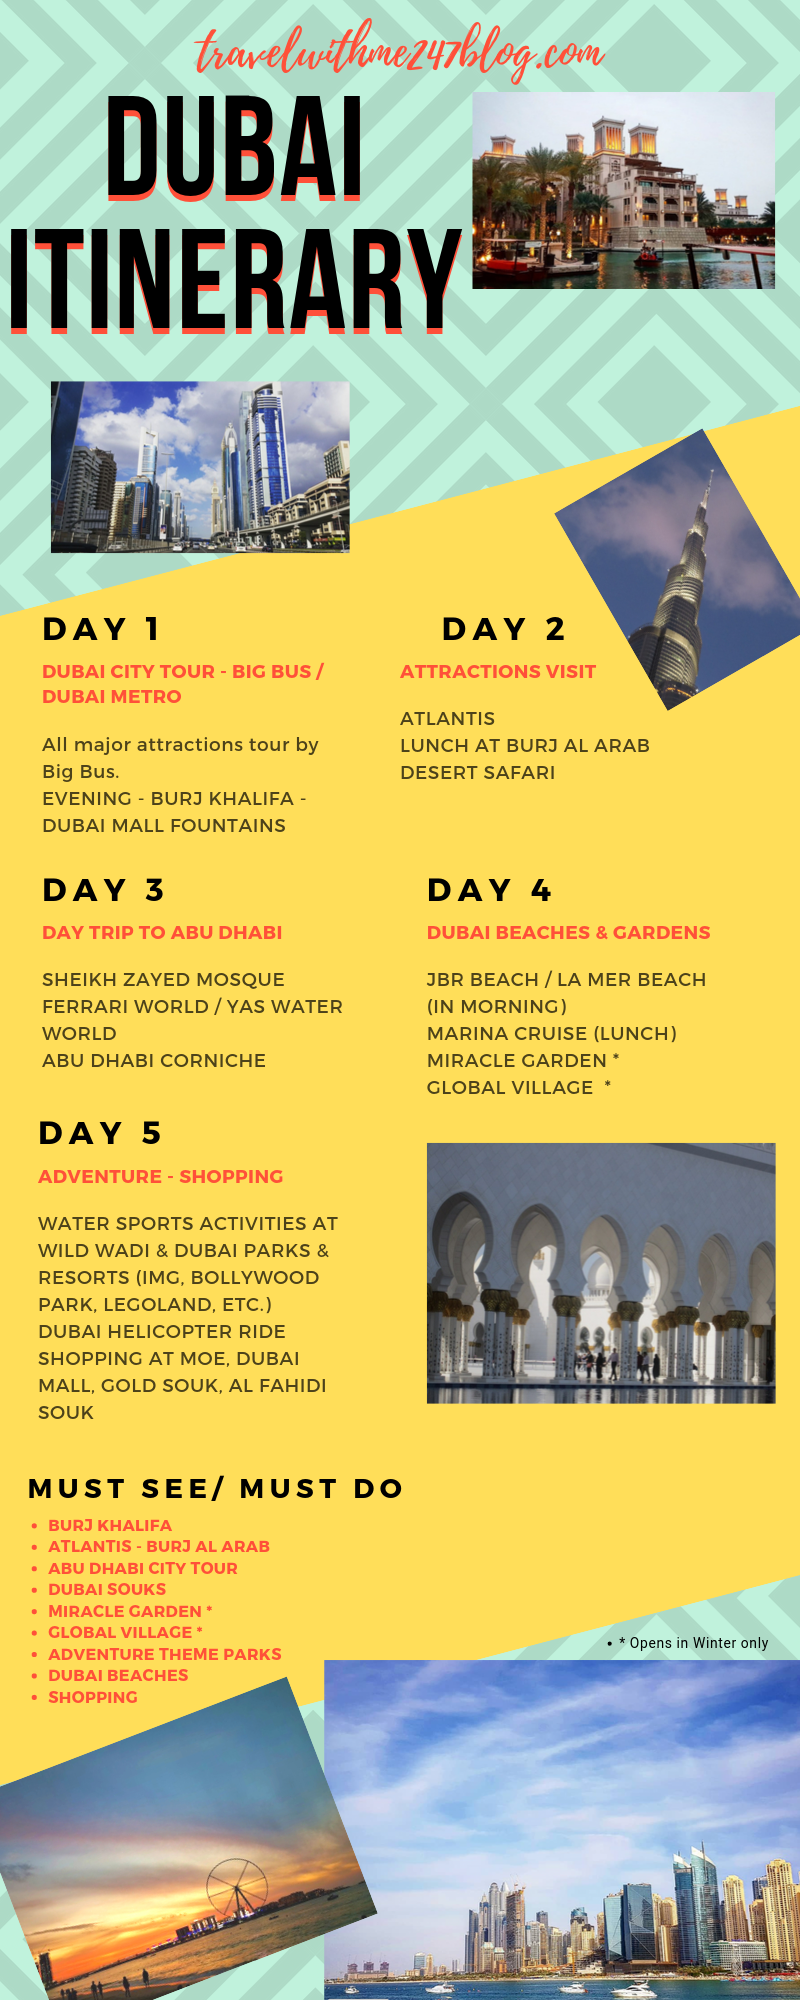 Things to do in Dubai in 5 days - Worth visiting places in Dubai for 5 days. Must do Activities in Dubai.  #UAE #Dubai #MiddleEast